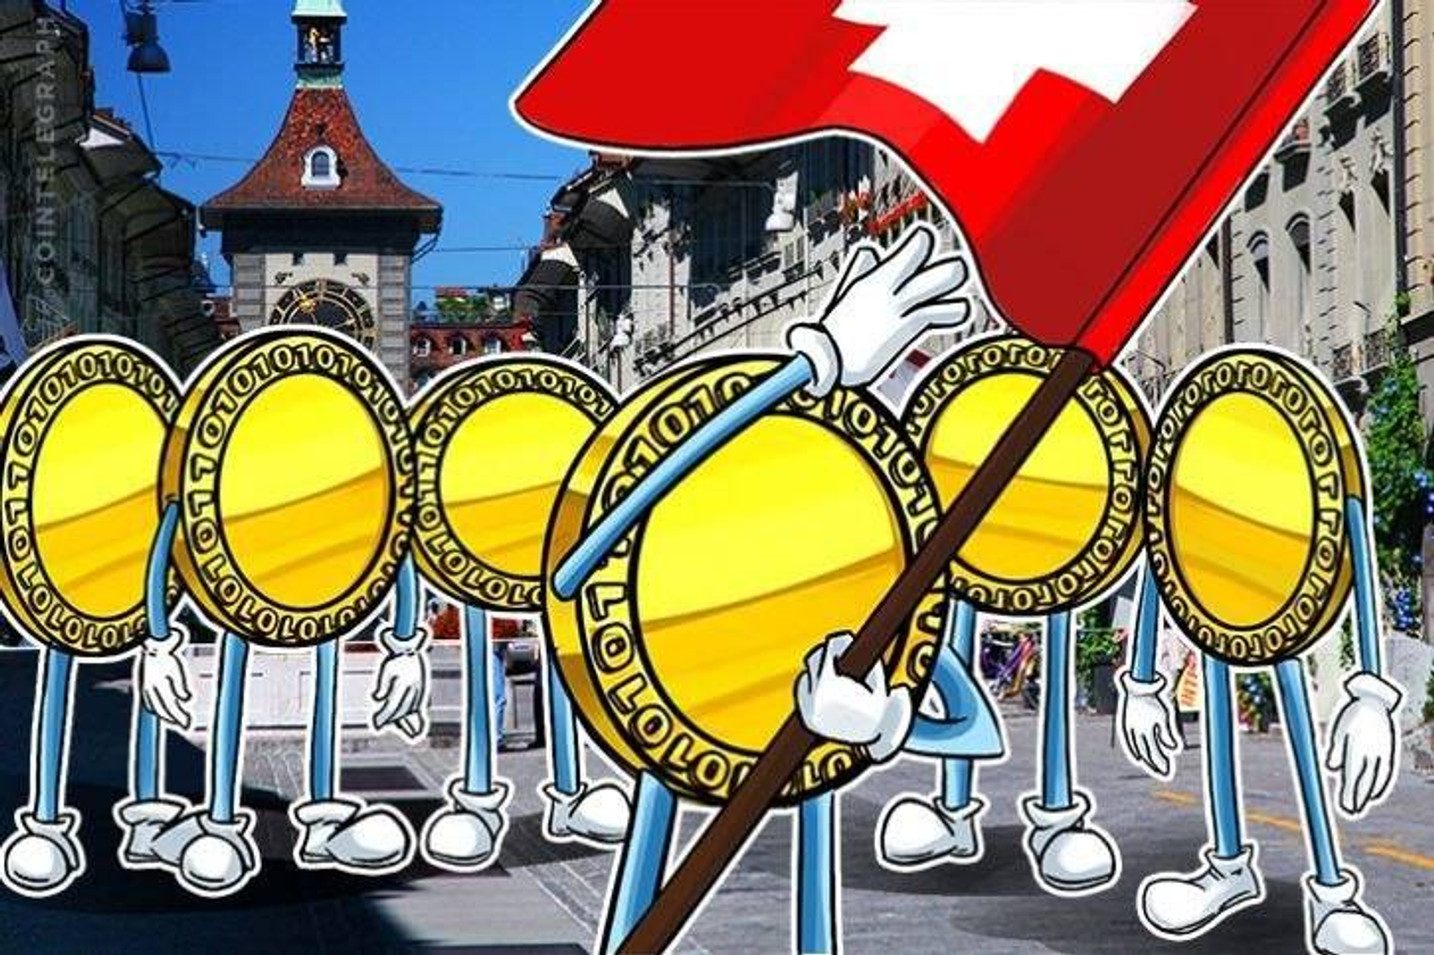 Gov't-Issued Digital Currencies Threaten Financial Stability, Says Swiss Central Banker